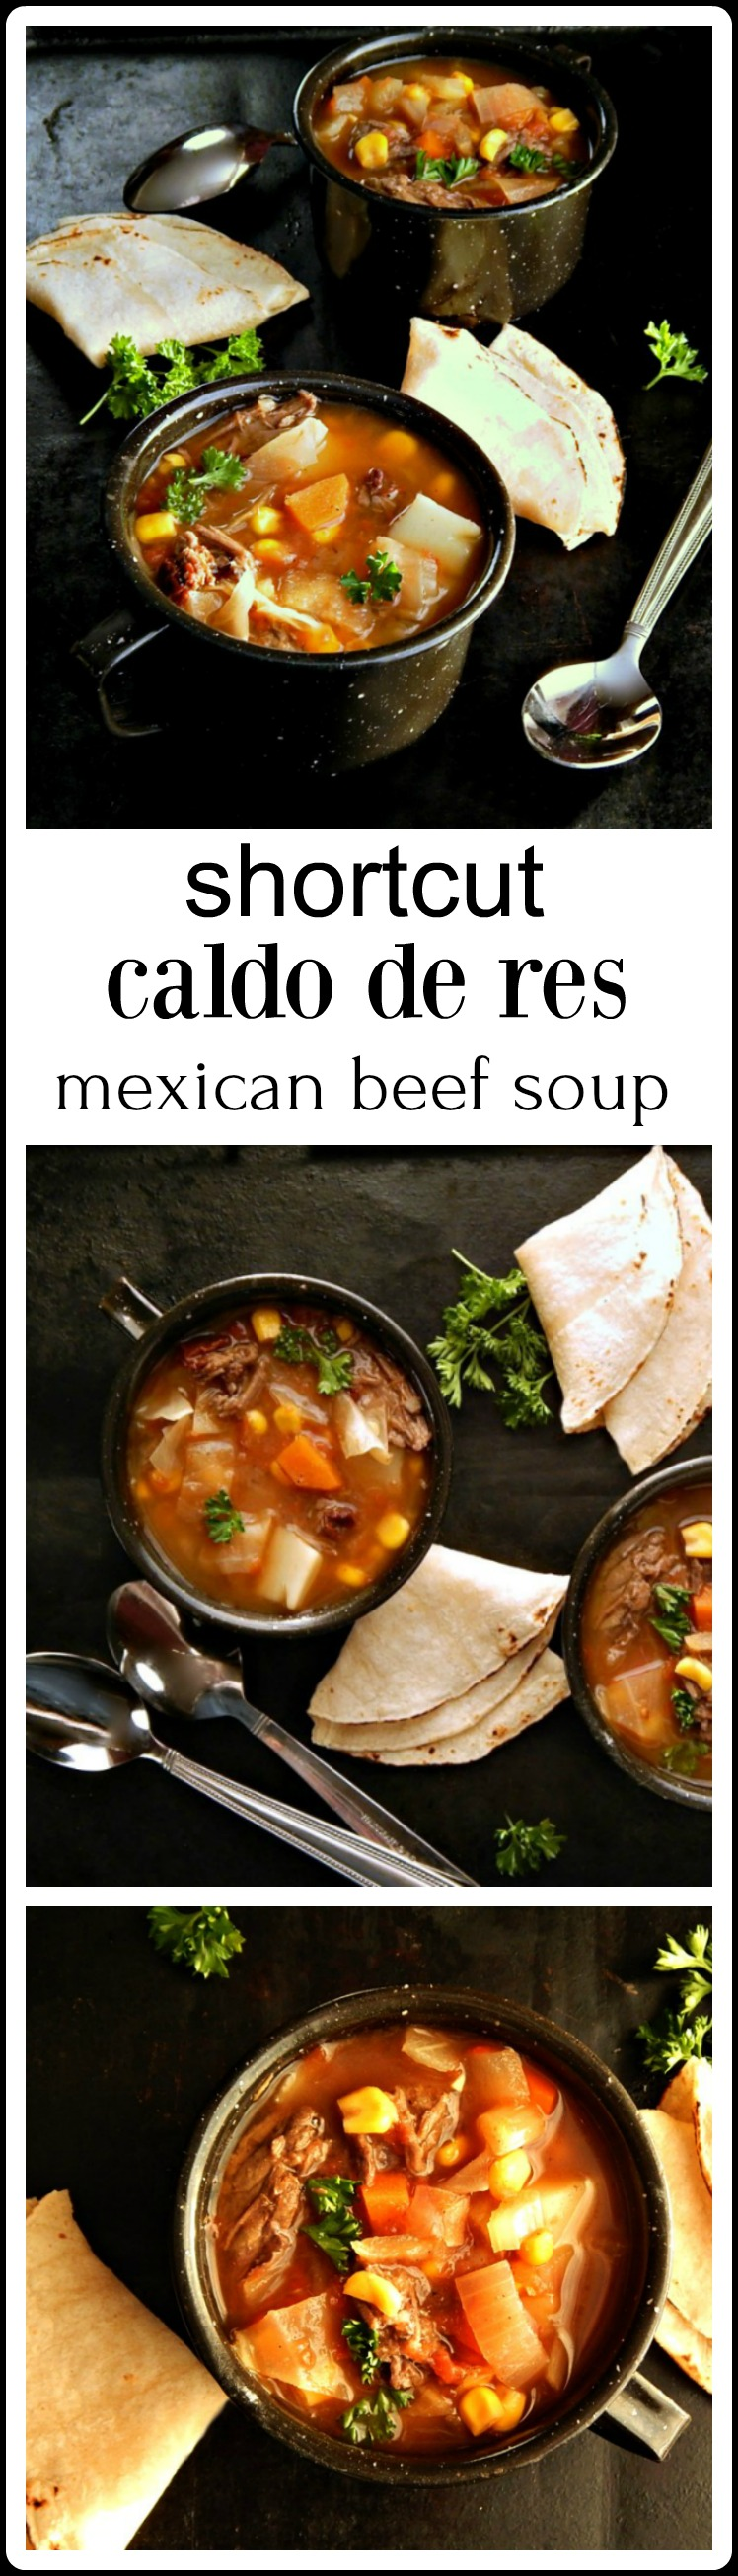 Shortcut Caldo de Res. a Mexican Beef Soup brimming with cabbage, carrots, potatoes & sweet corn. Get complex flavor in little time by starting with Barbacoa. #LeftoverBarbacoa #MexicanBeefSoup #CaldoDeRes #CincoDeMayo